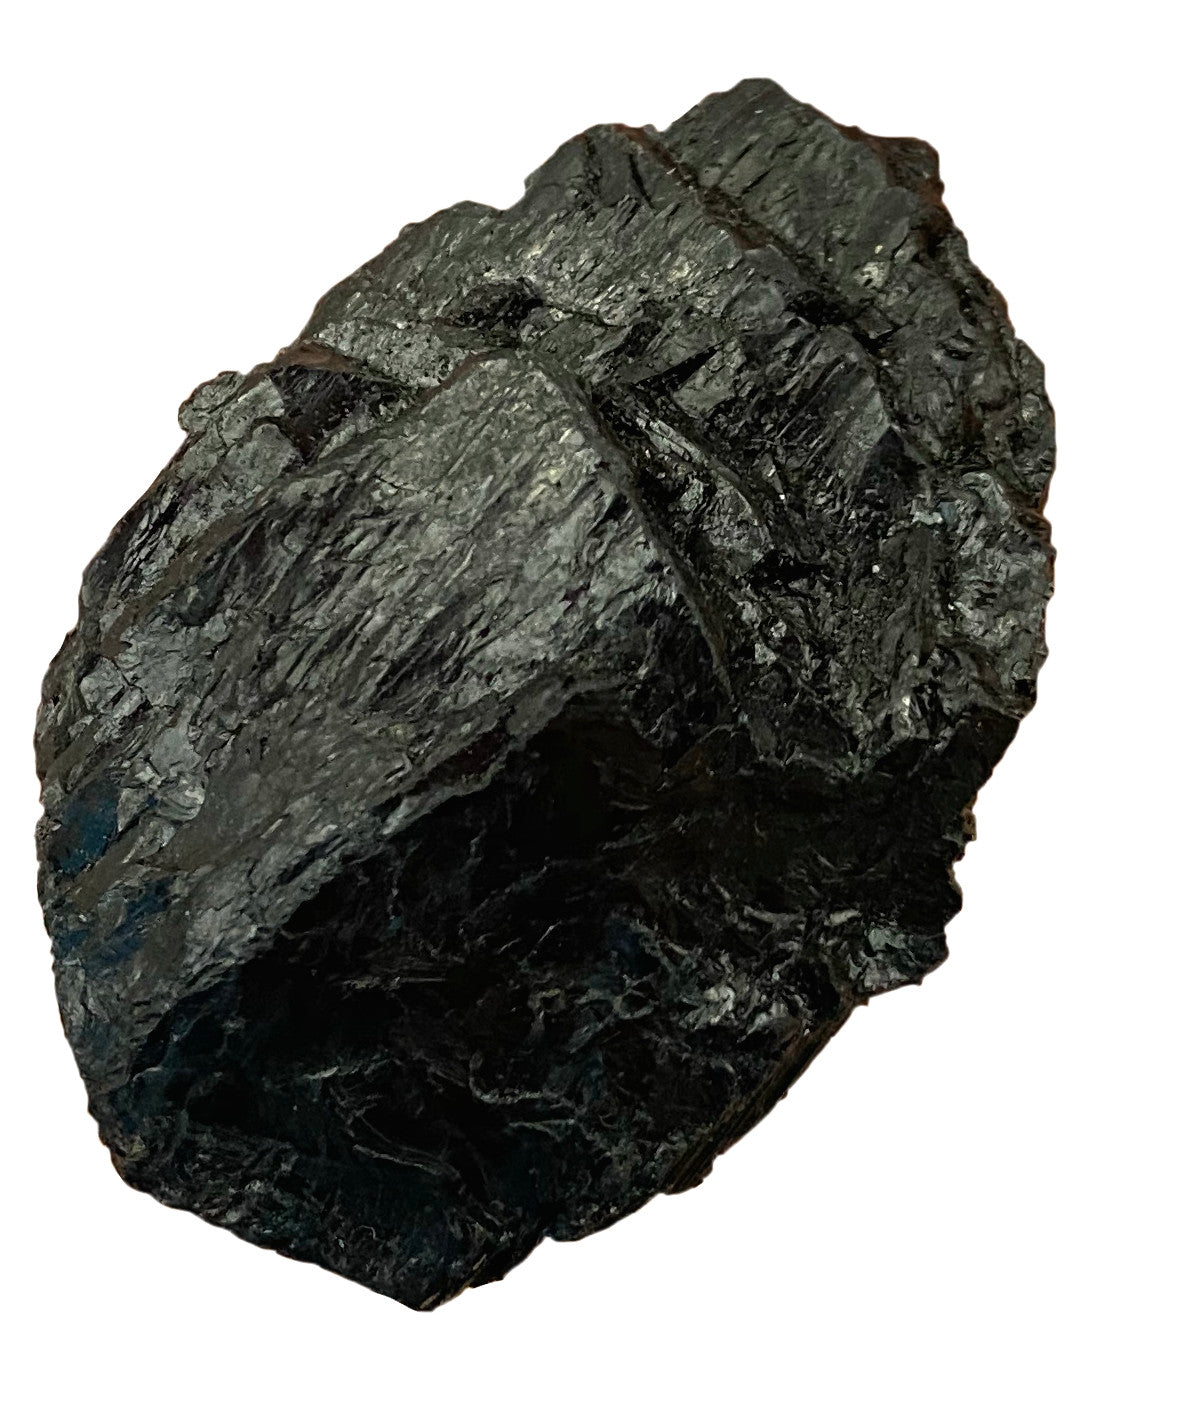 Black Tourmaline - x1 Raw Crystal - Wonderful for repelling & blocking negative energies & psychic attack - Chakra Palace